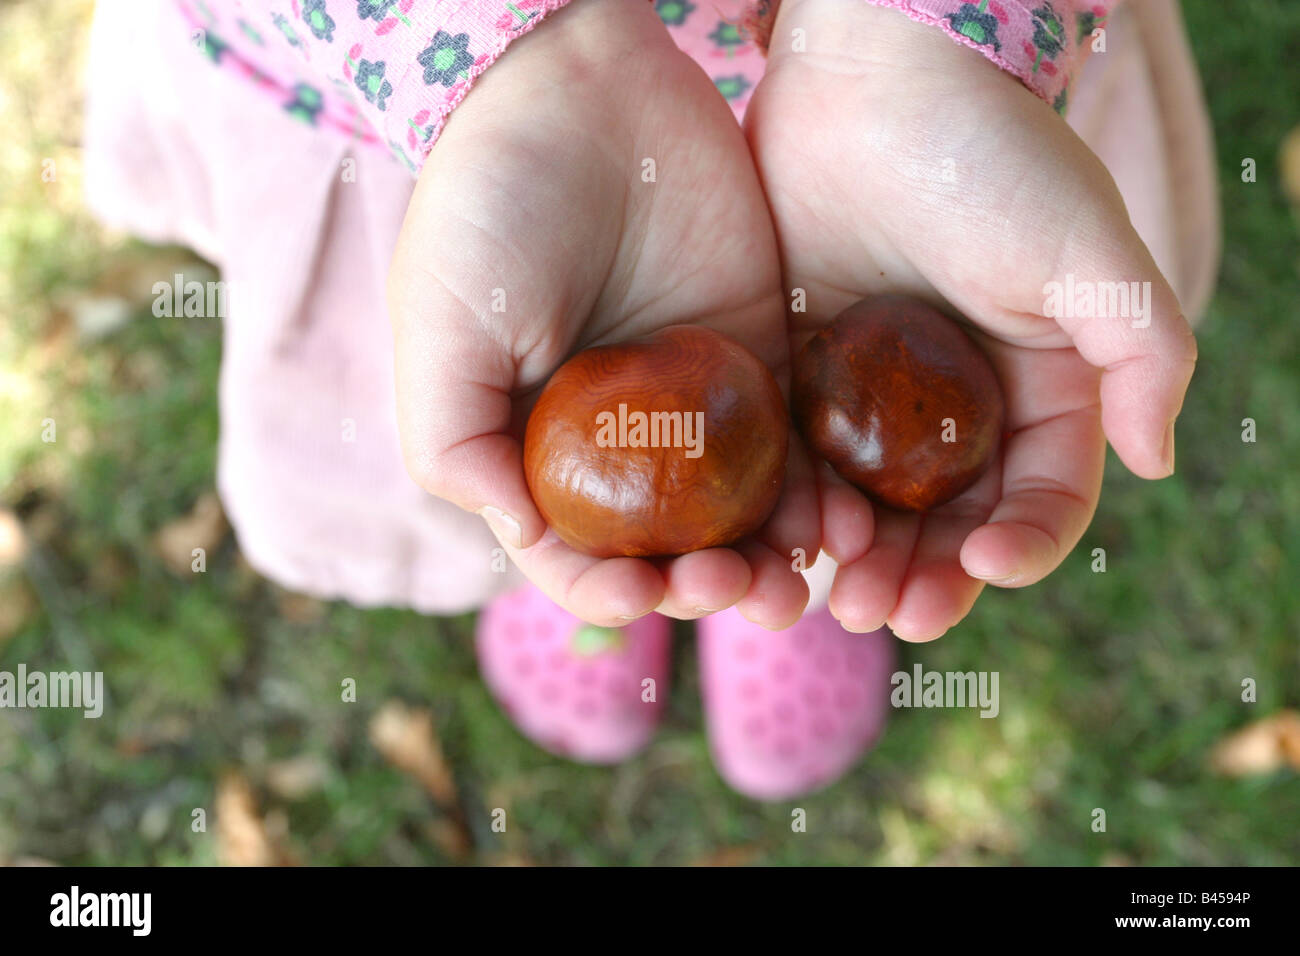 Hands holding Conkers - Stock Image